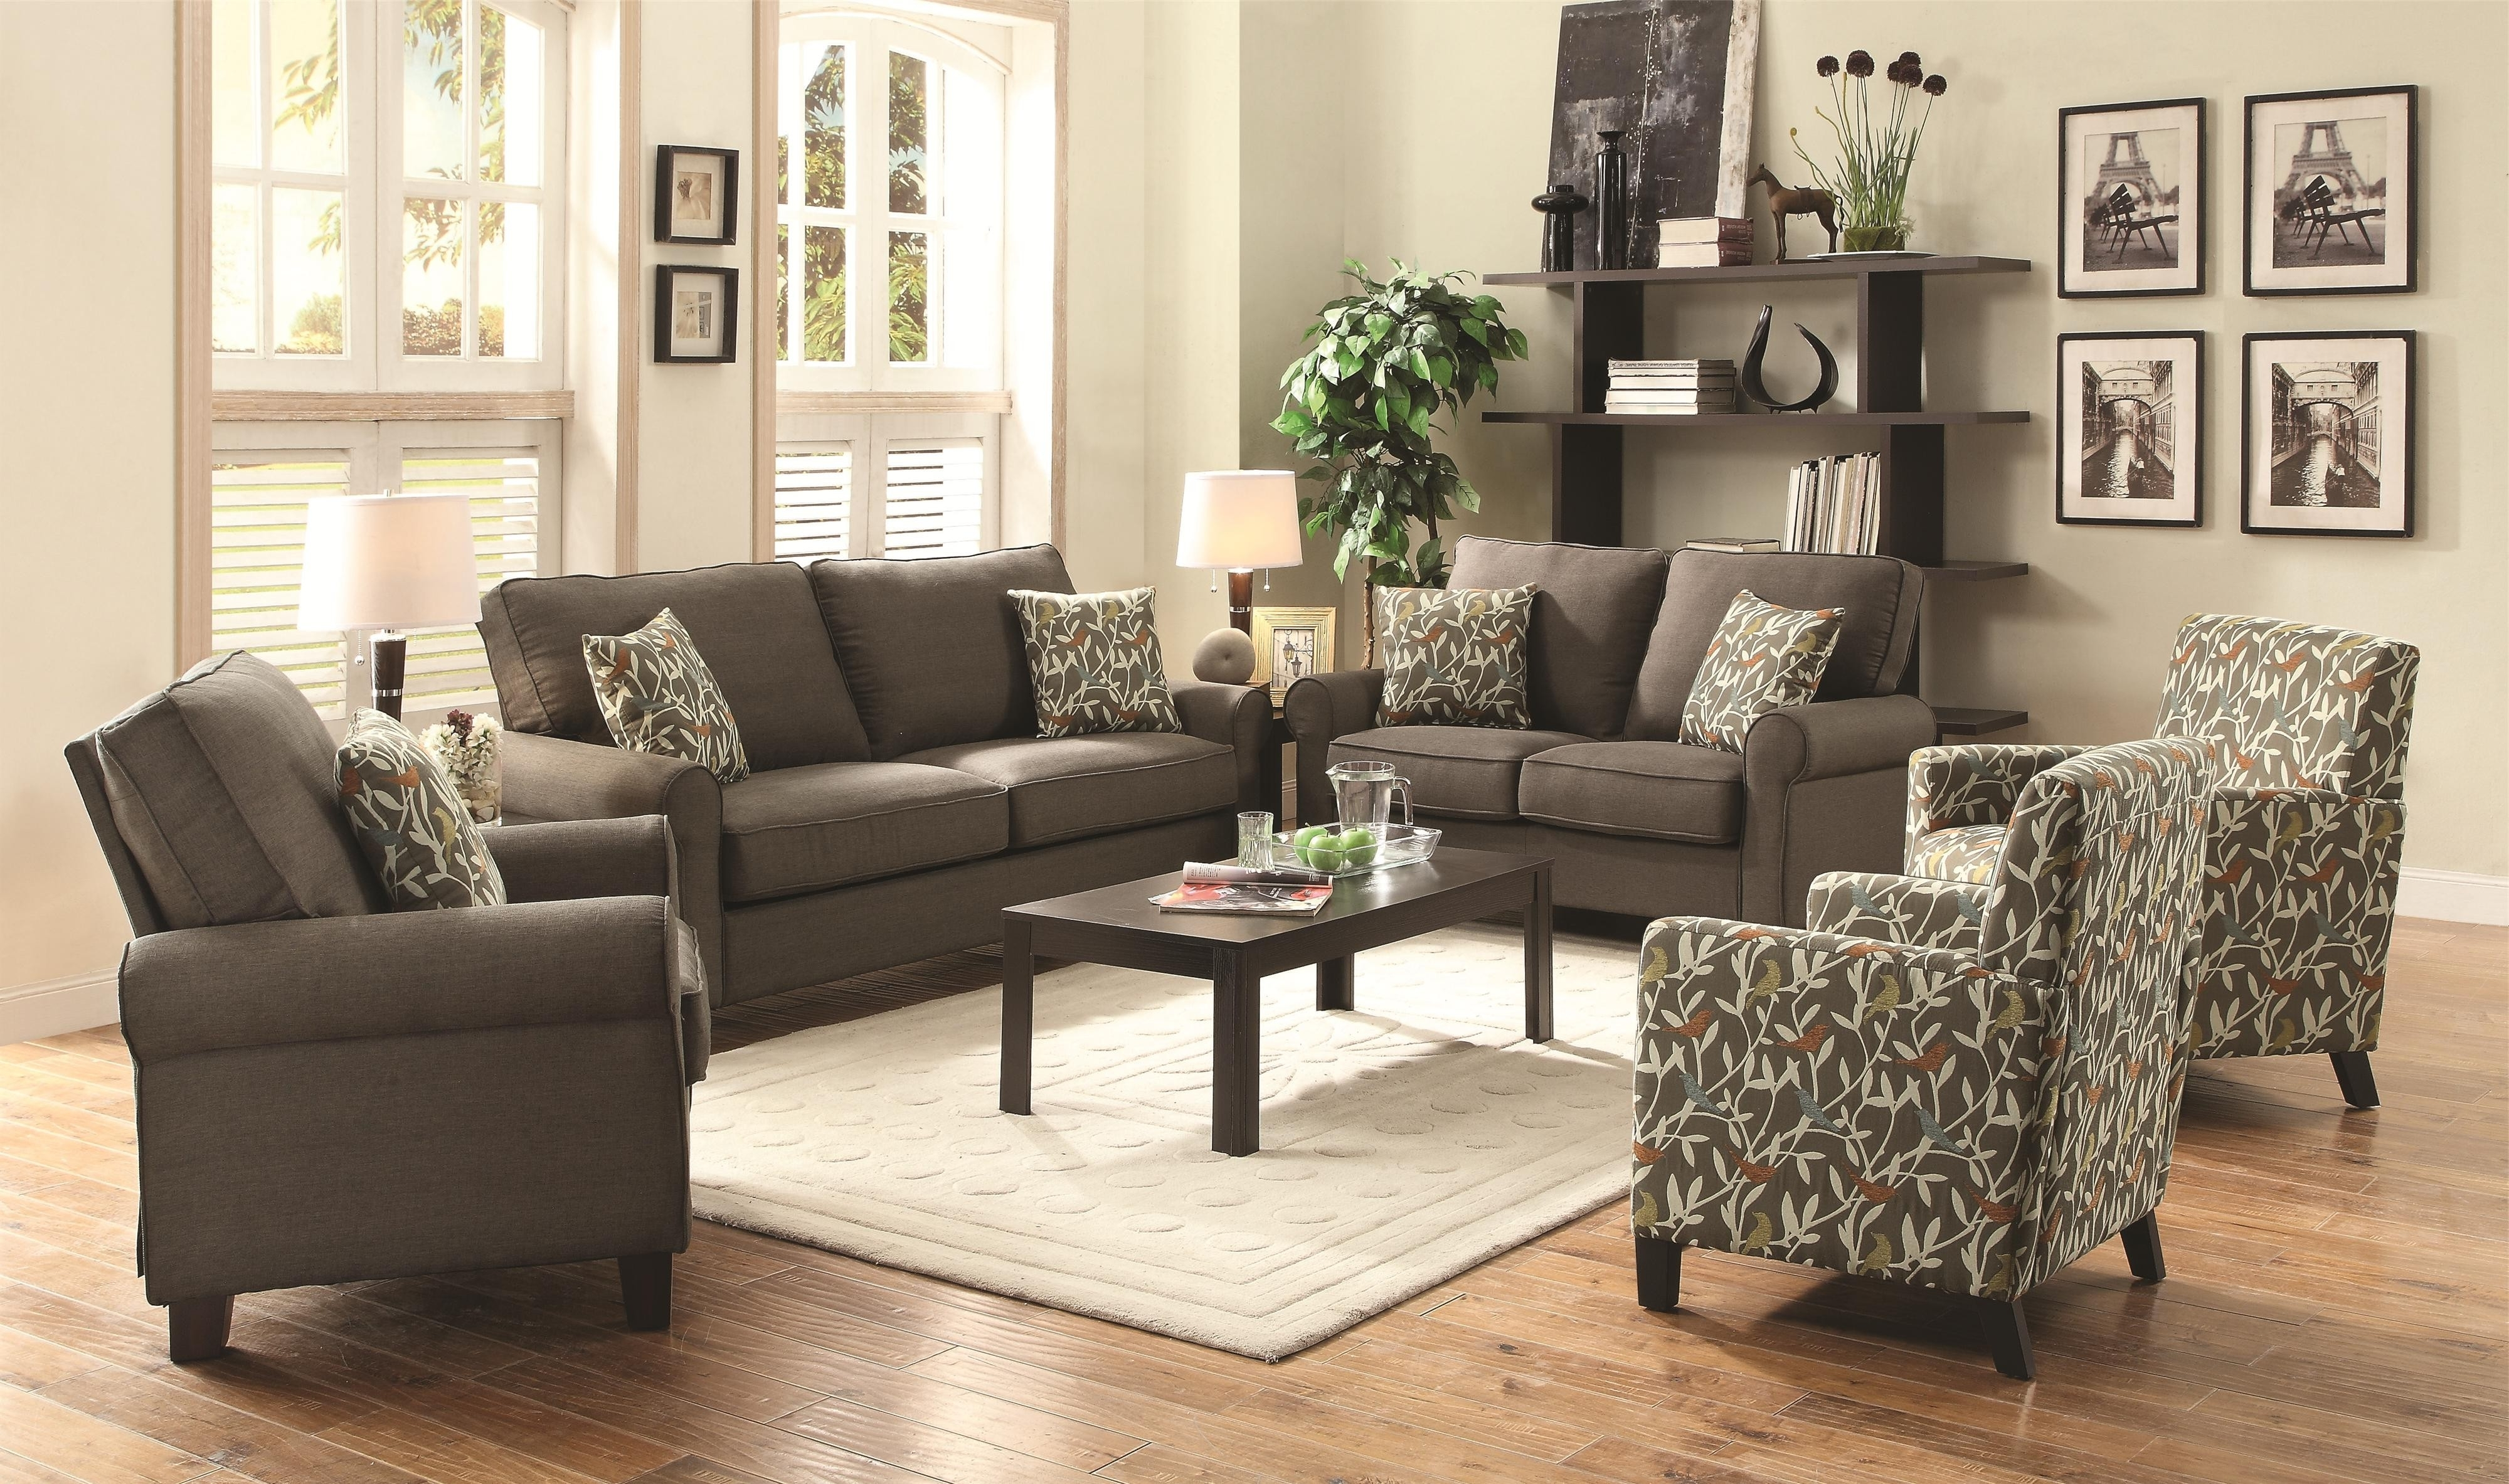 Casual Sofas And Chairs With Regard To Popular Casual Sofas And Chairs – Fjellkjeden (View 3 of 15)